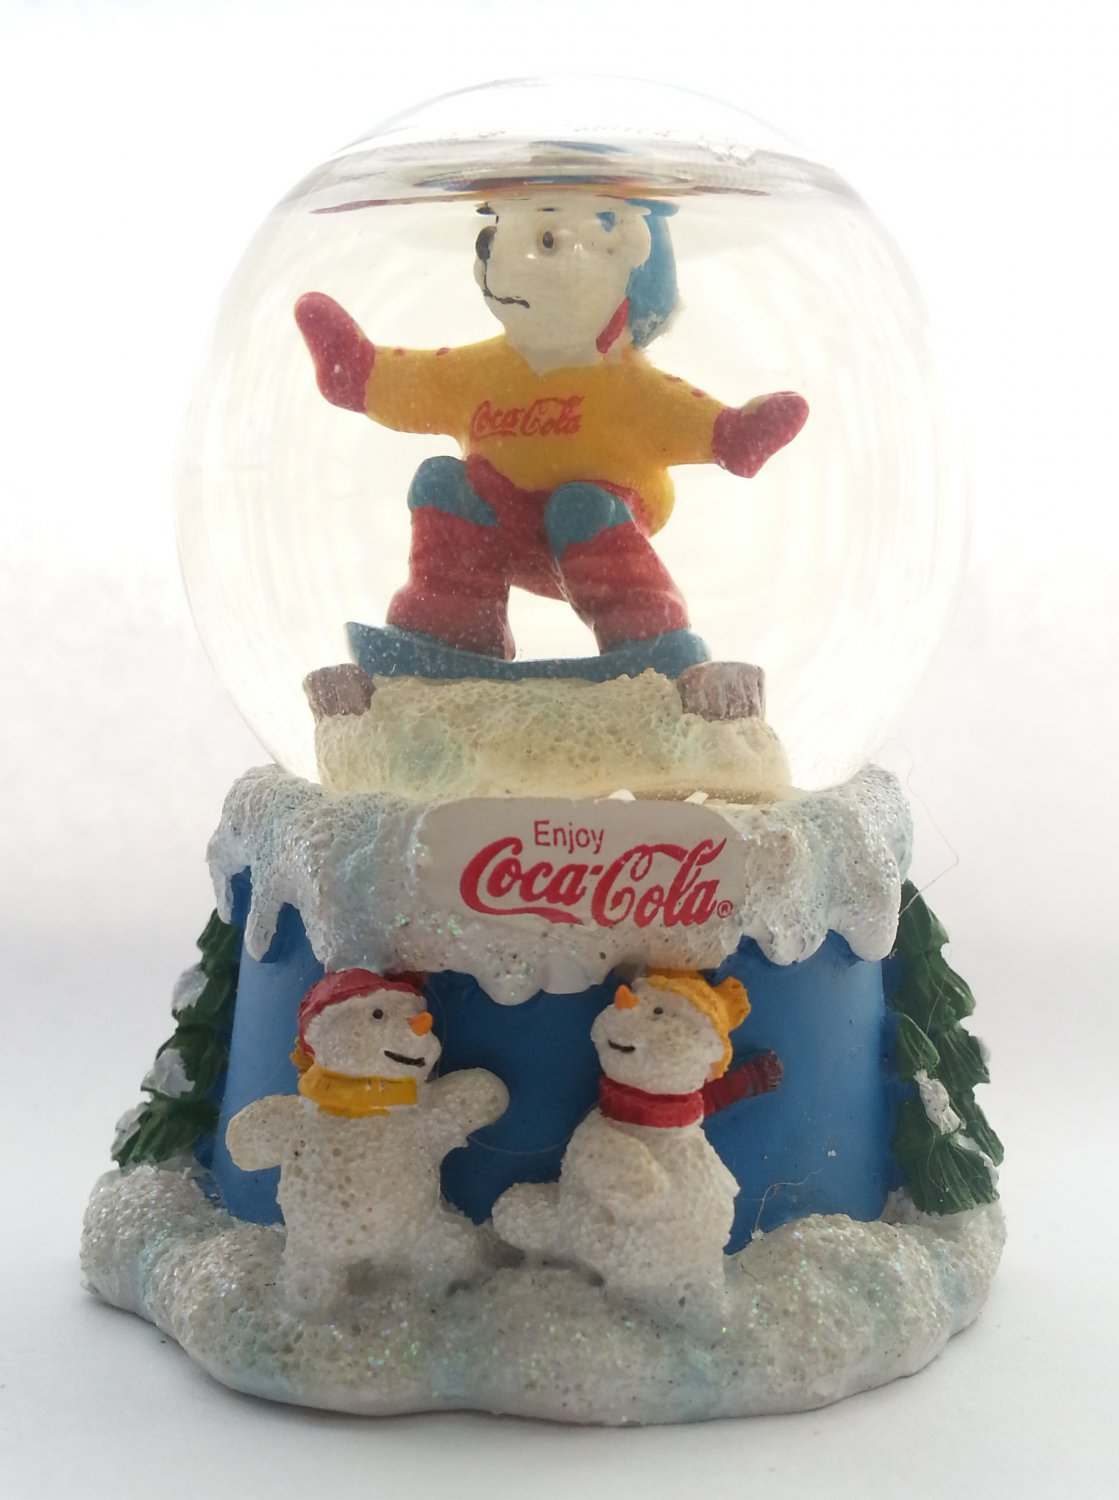 2000 COCA-COLA Winter Magic Glitter Snow Globe